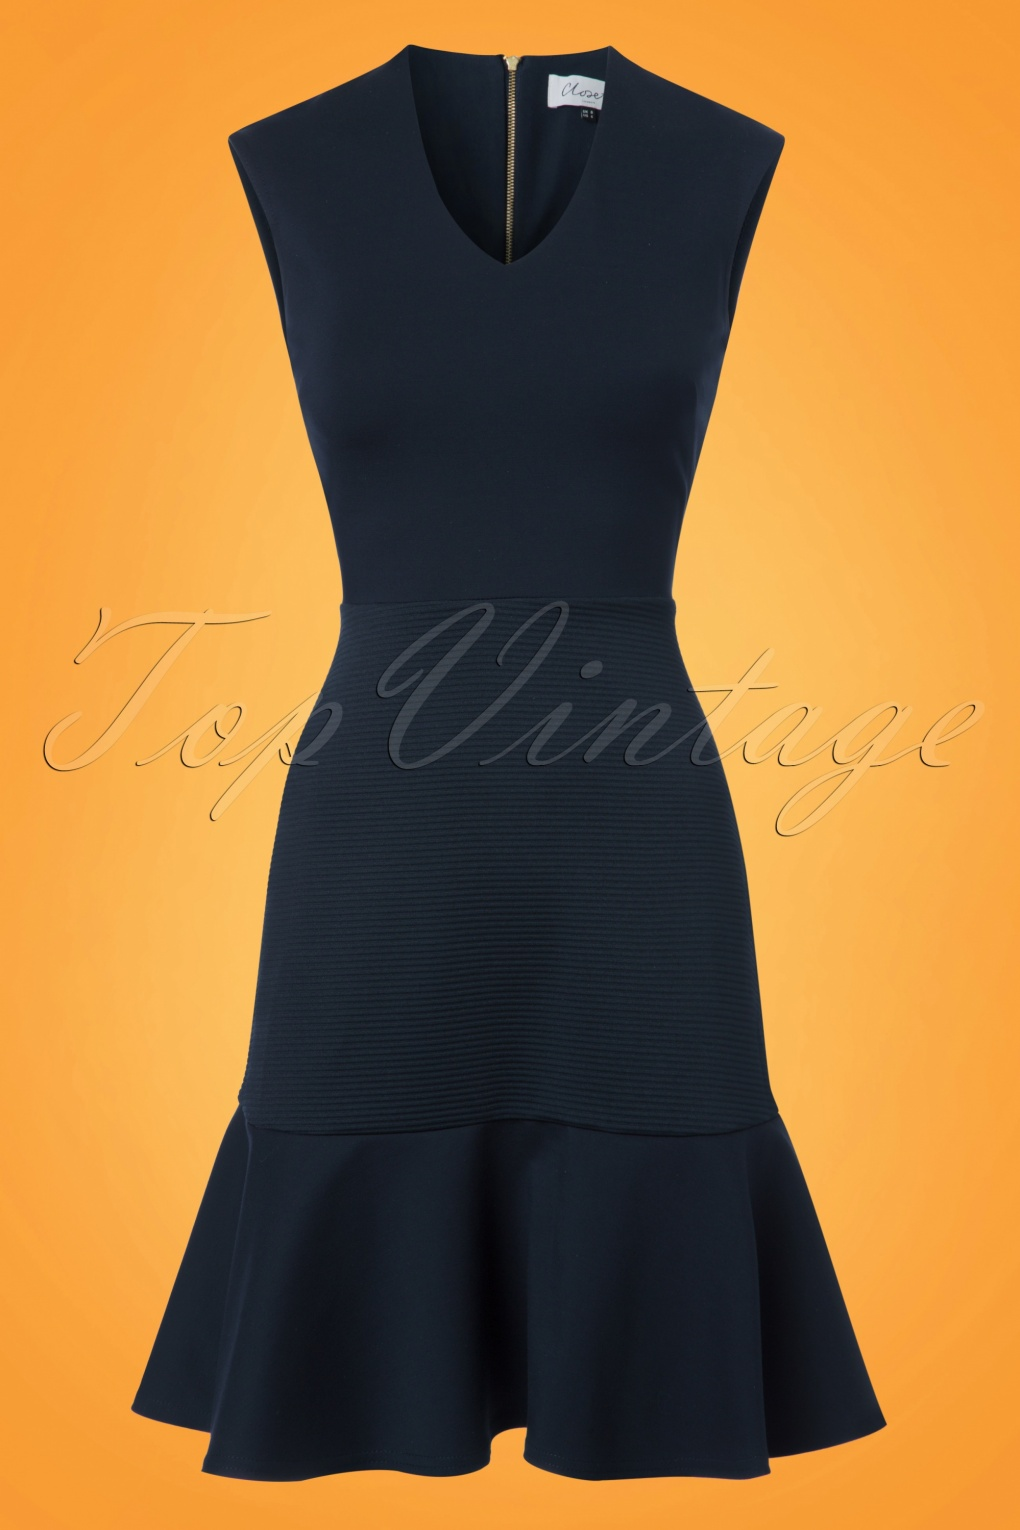 1960s Mad Men Dresses and Clothing Styles 60s Pixie Peplum Dress in Navy £61.95 AT vintagedancer.com